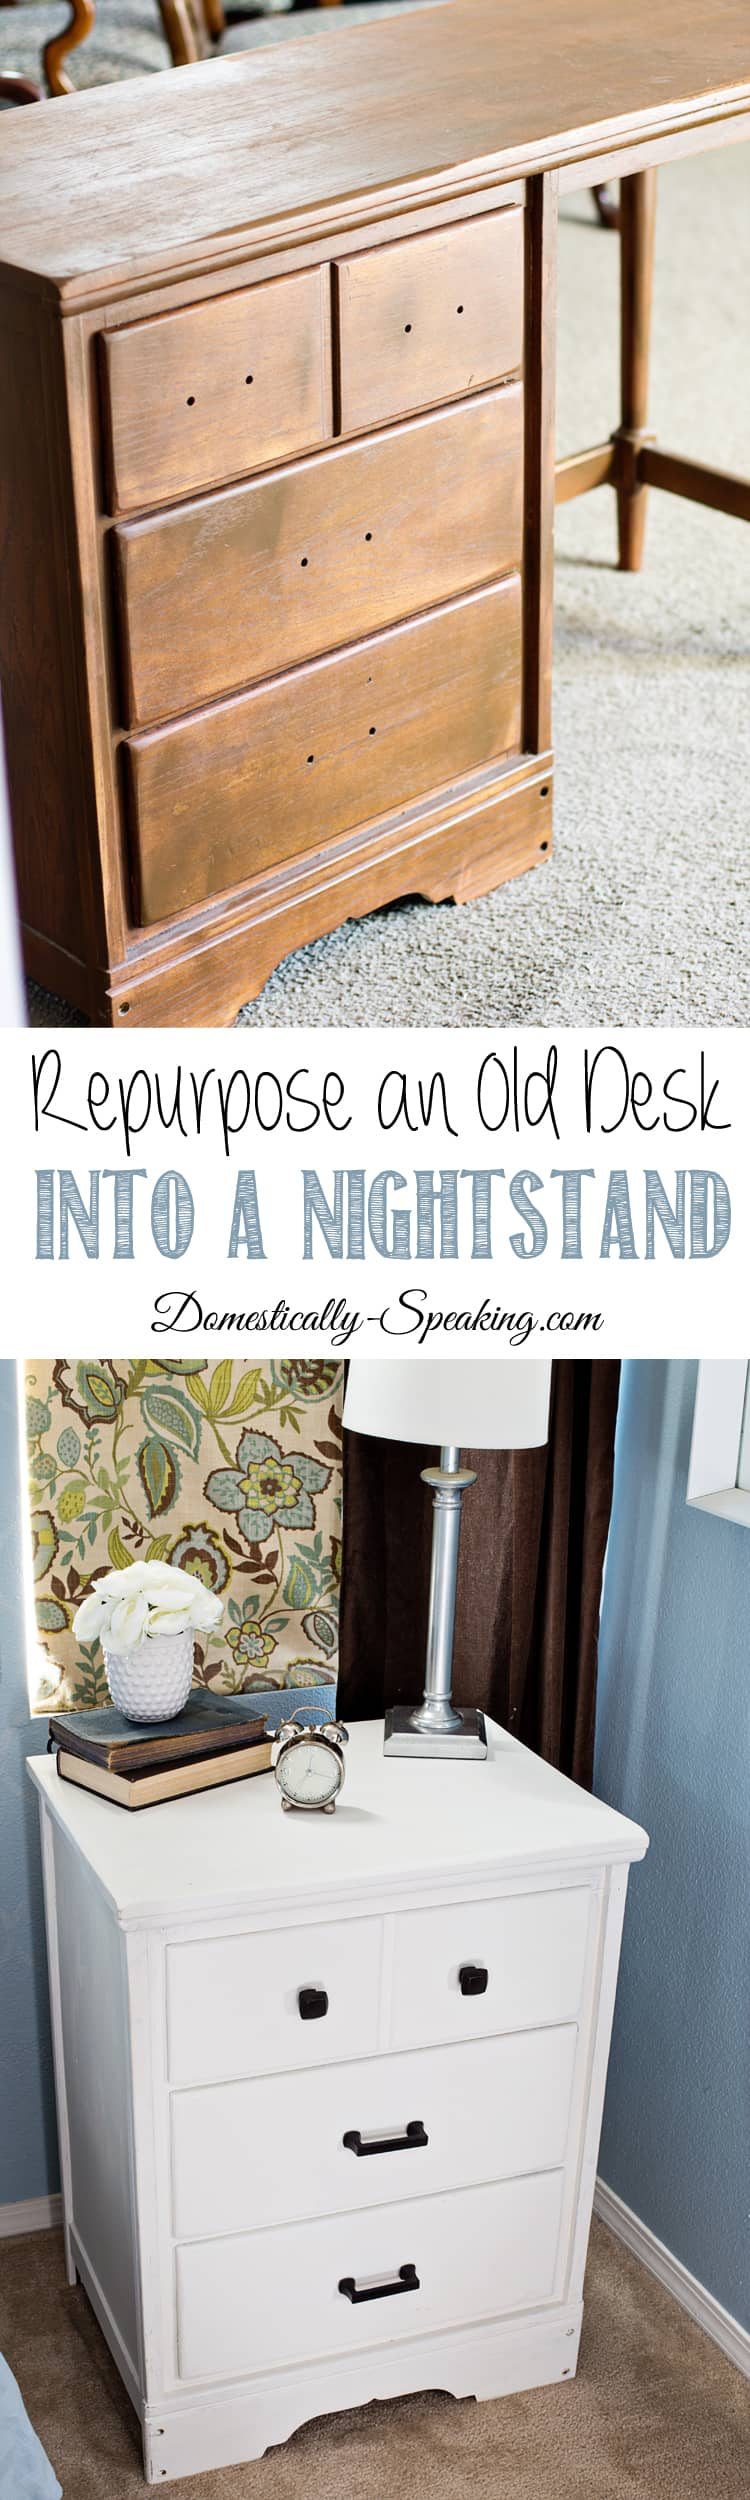 Repurpose an Old Desk into a Updated Nightstand